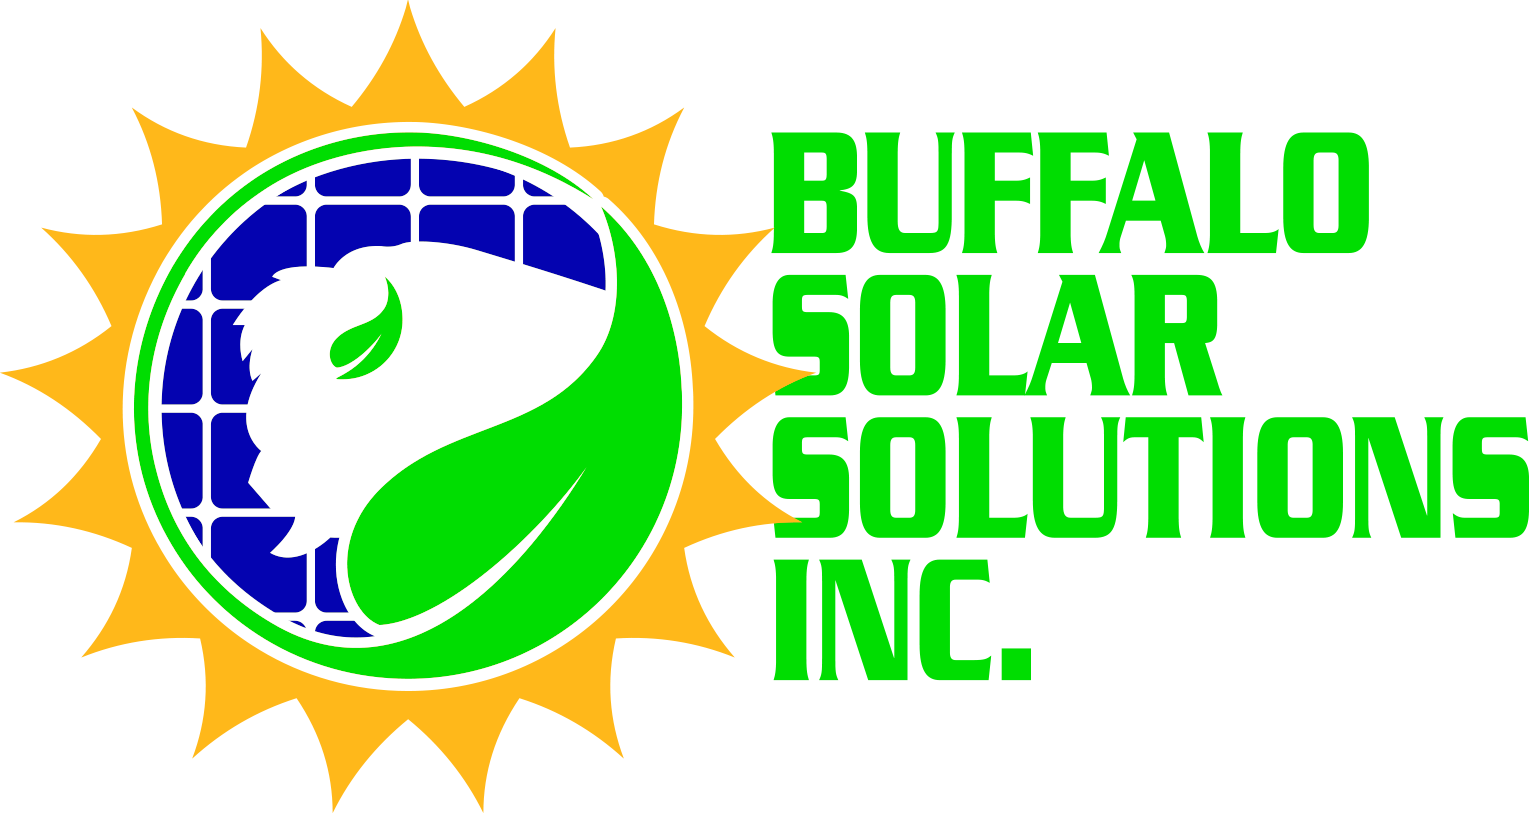 Buffalo Solar Solutions inc